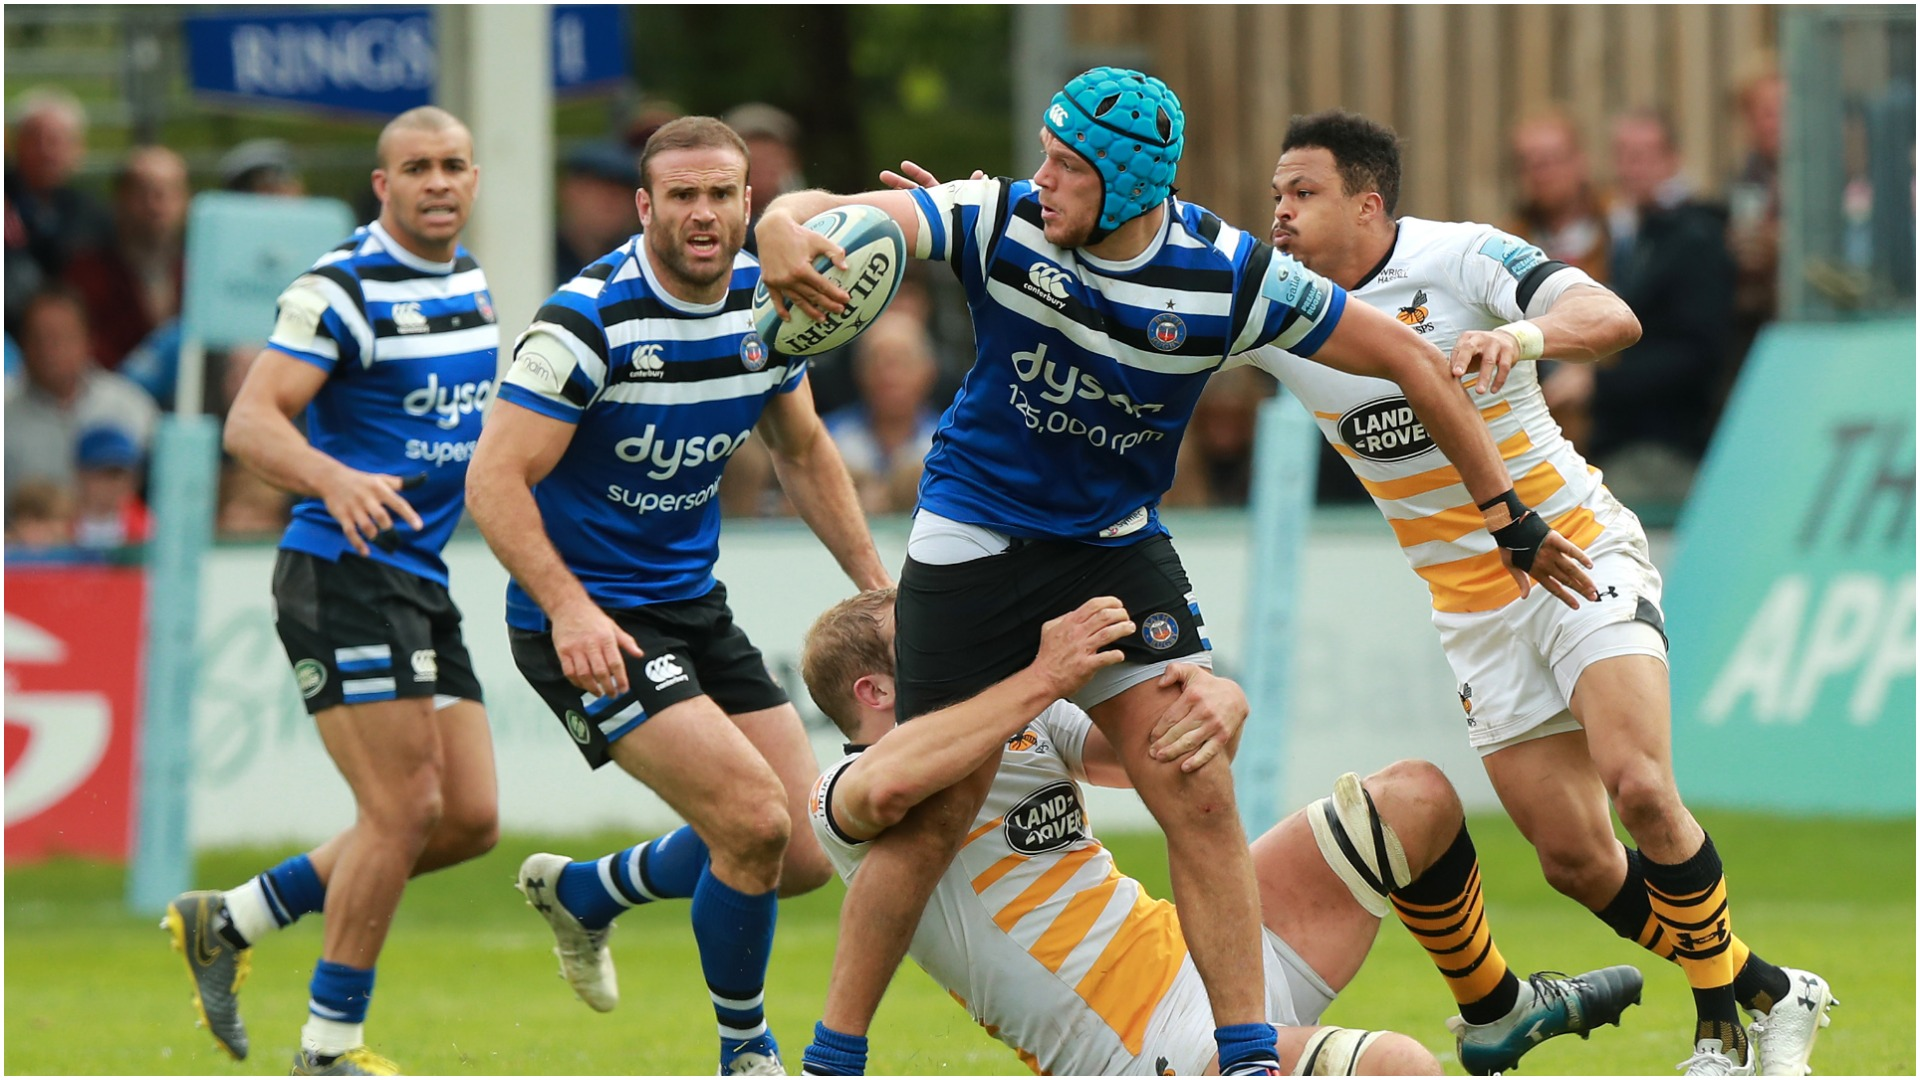 Wasps' play-off hopes end in late collapse